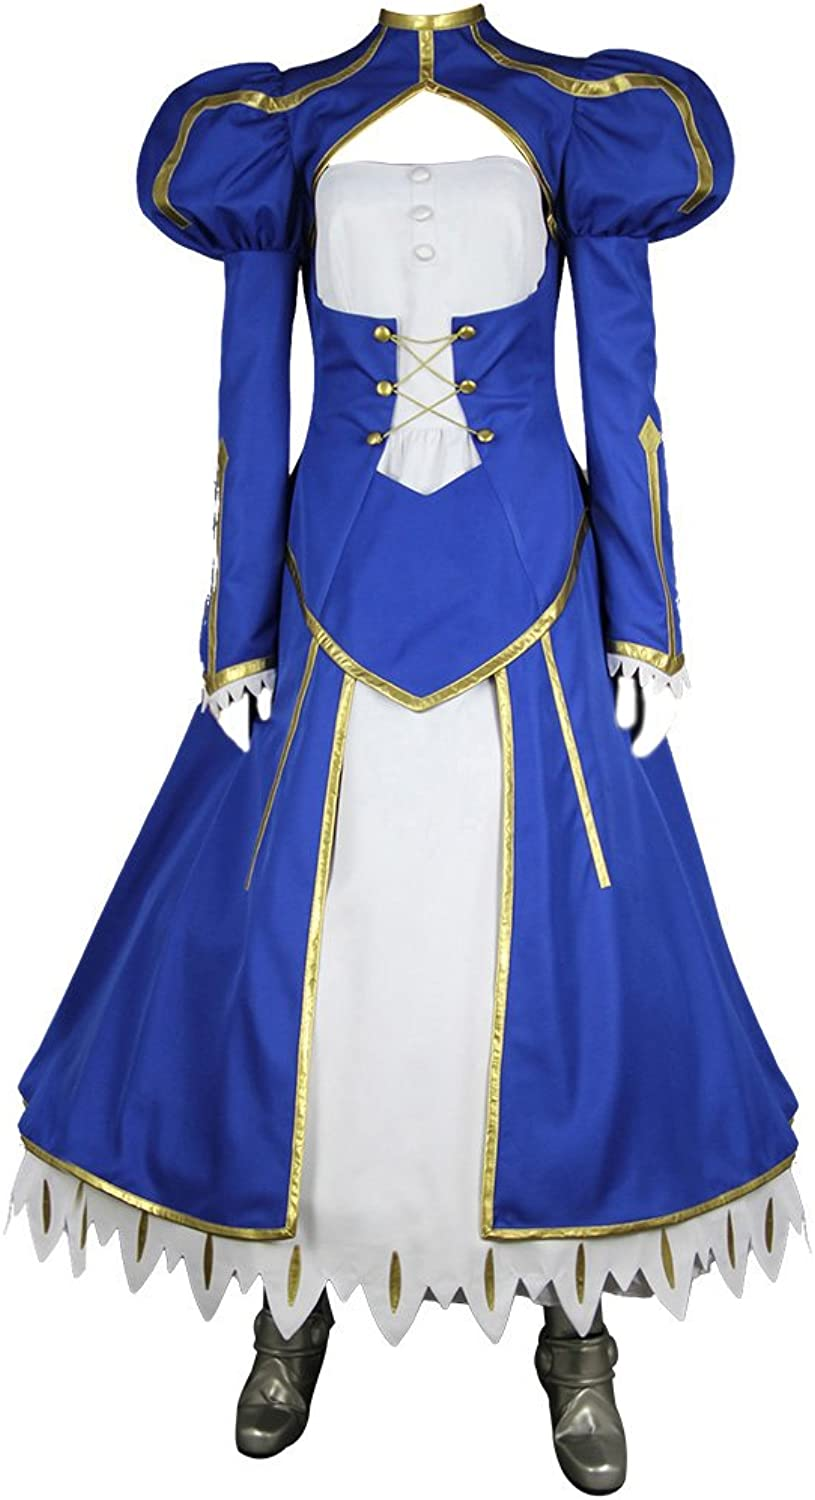 Fate Stay Night Cosplay Costume Saber Swordsmen Suit Movie Ver. Dx All